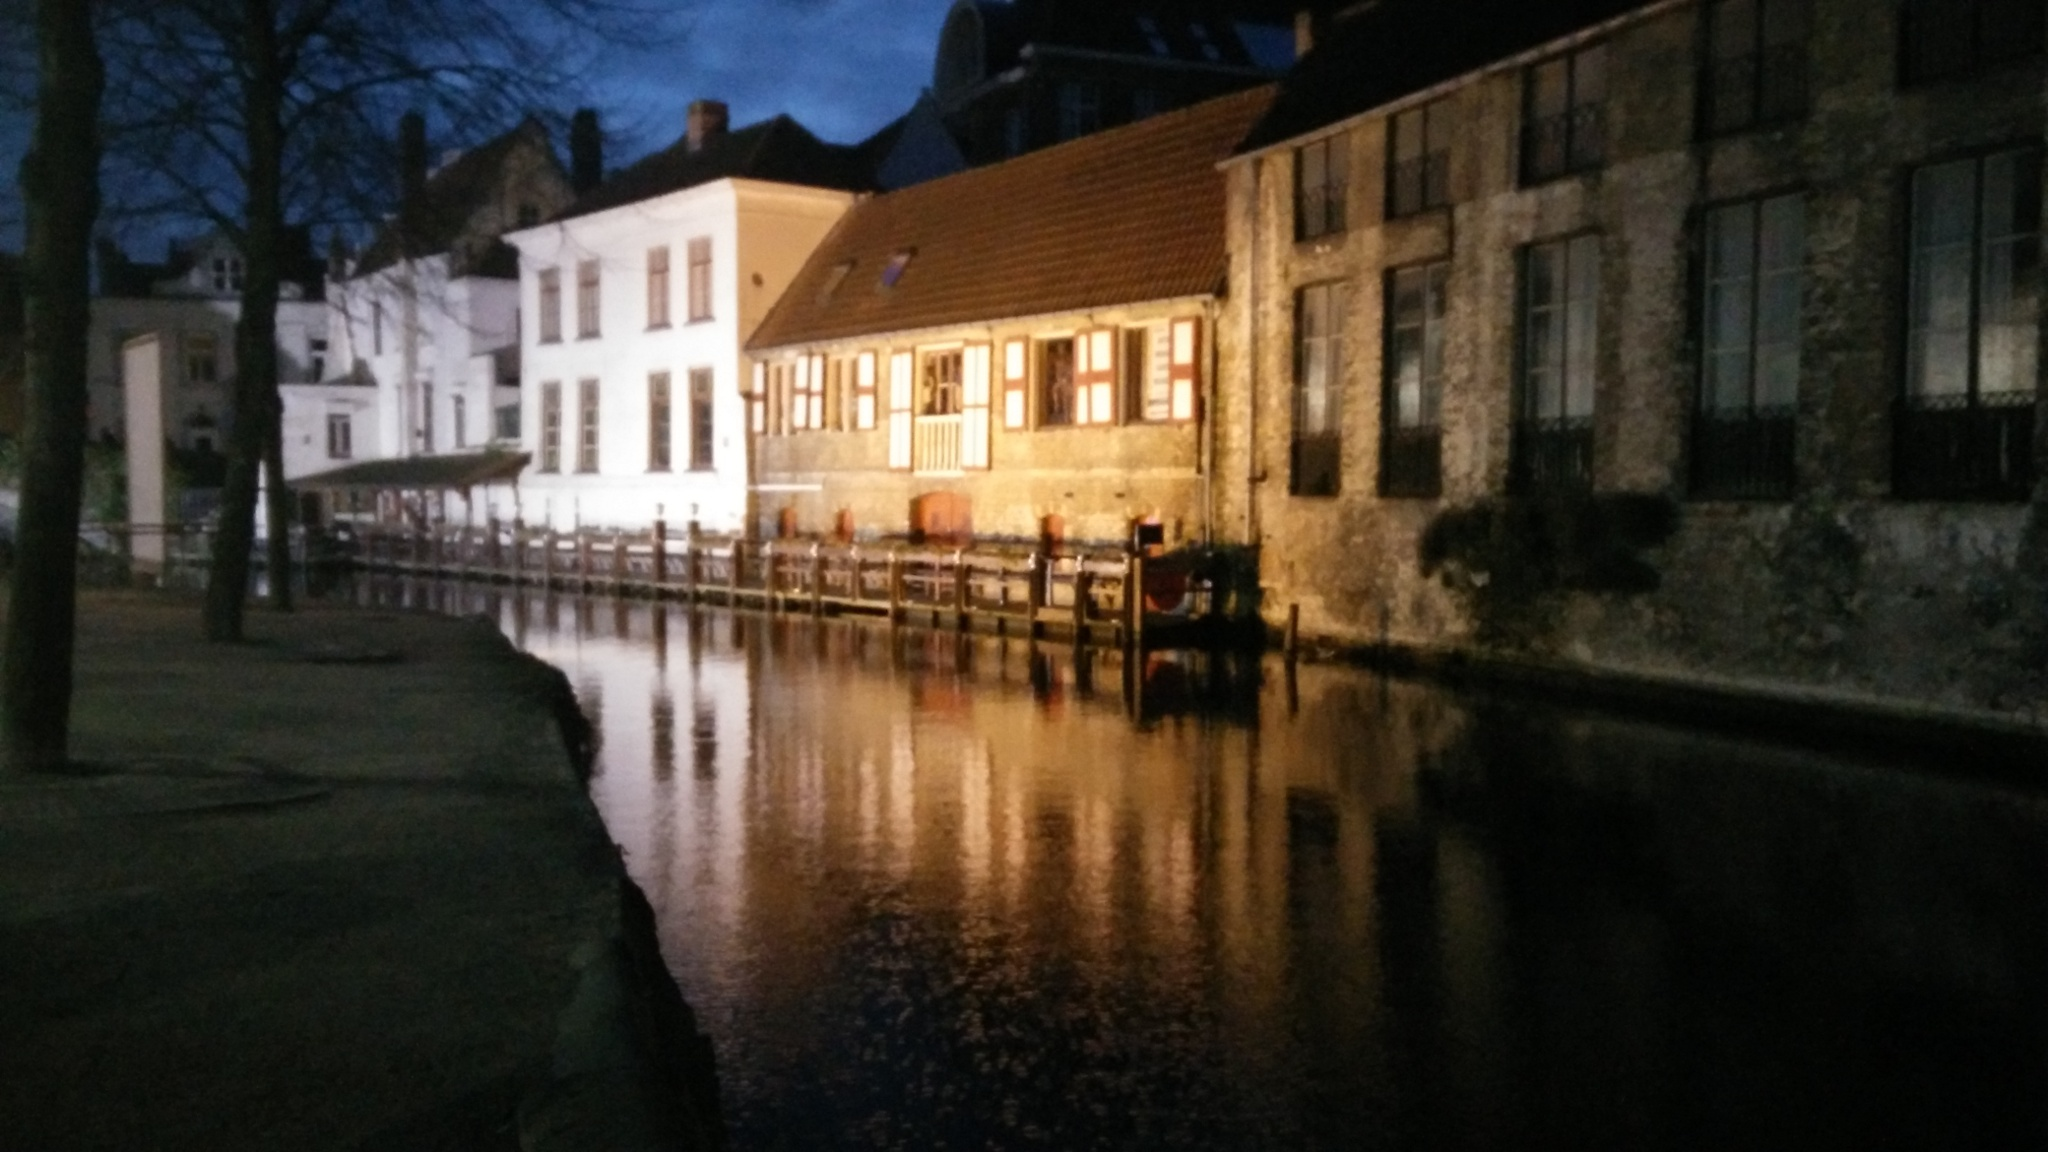 A Winter's stroll in Bruges  by r1ch1eb